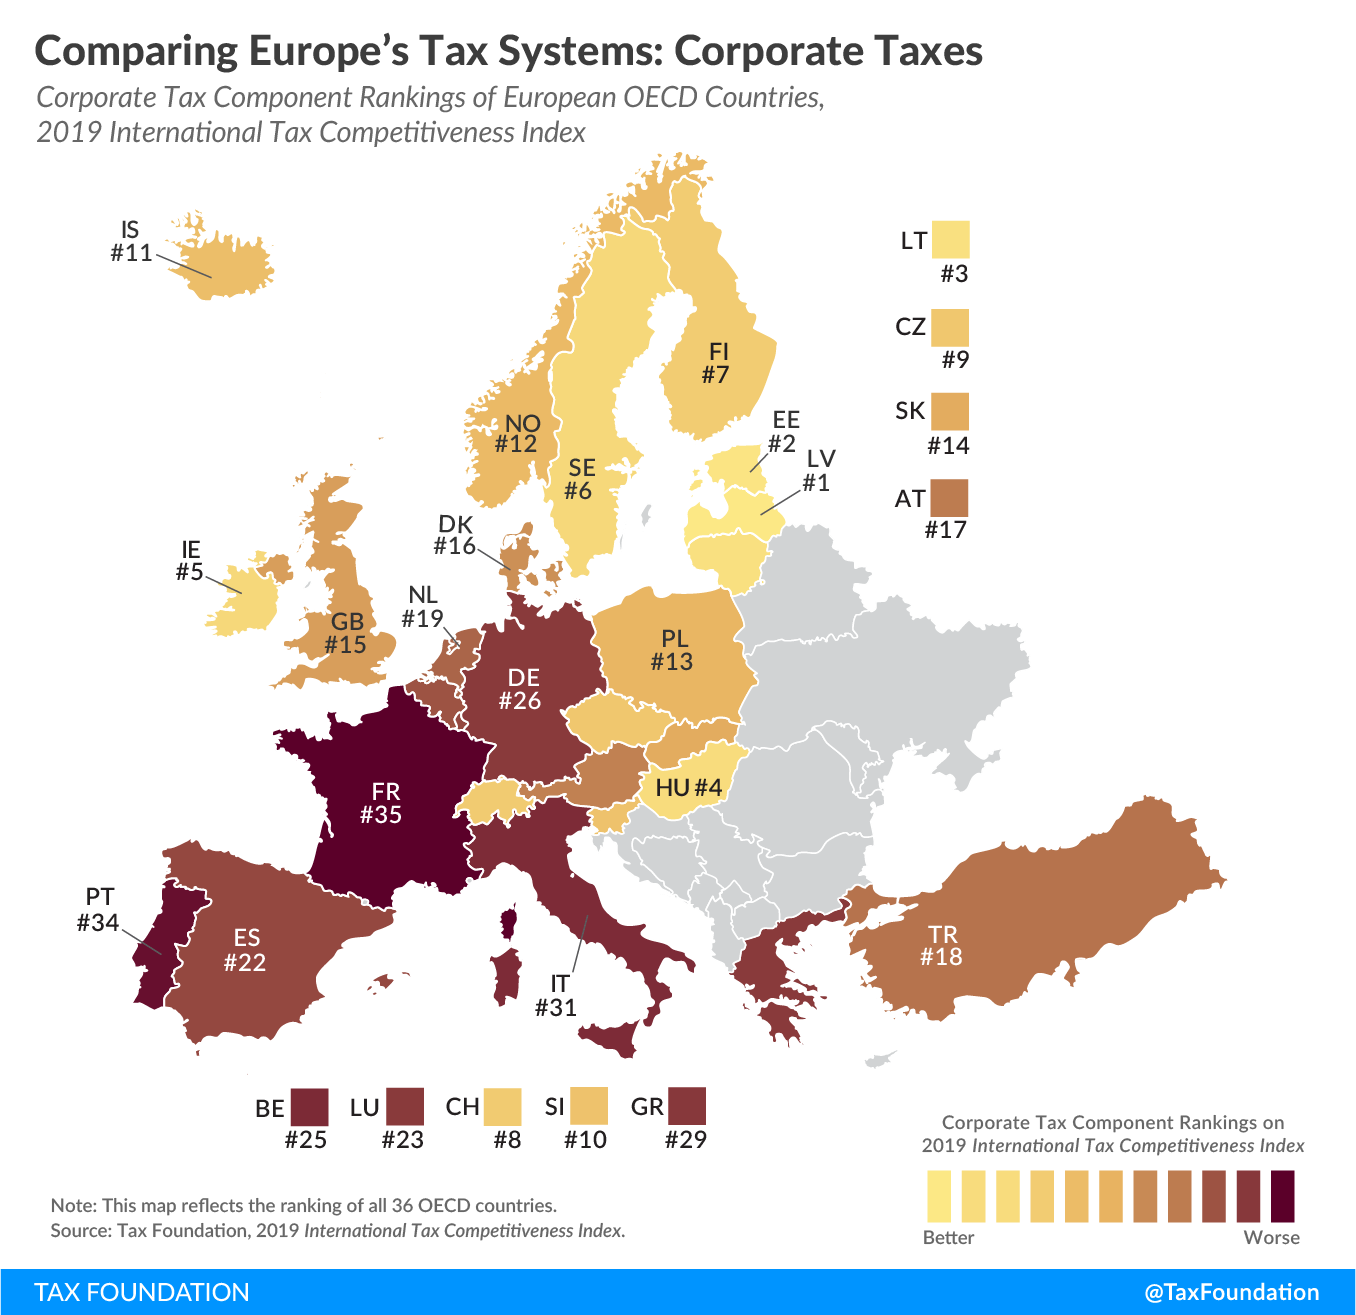 Worst corporate tax systems in the OECD, best corporate tax systems in Europe, best corporate tax systems in the OECD, Worst corporate tax systems in Europe, Best corporate tax systems in Europe, worst corporate tax codes around the world